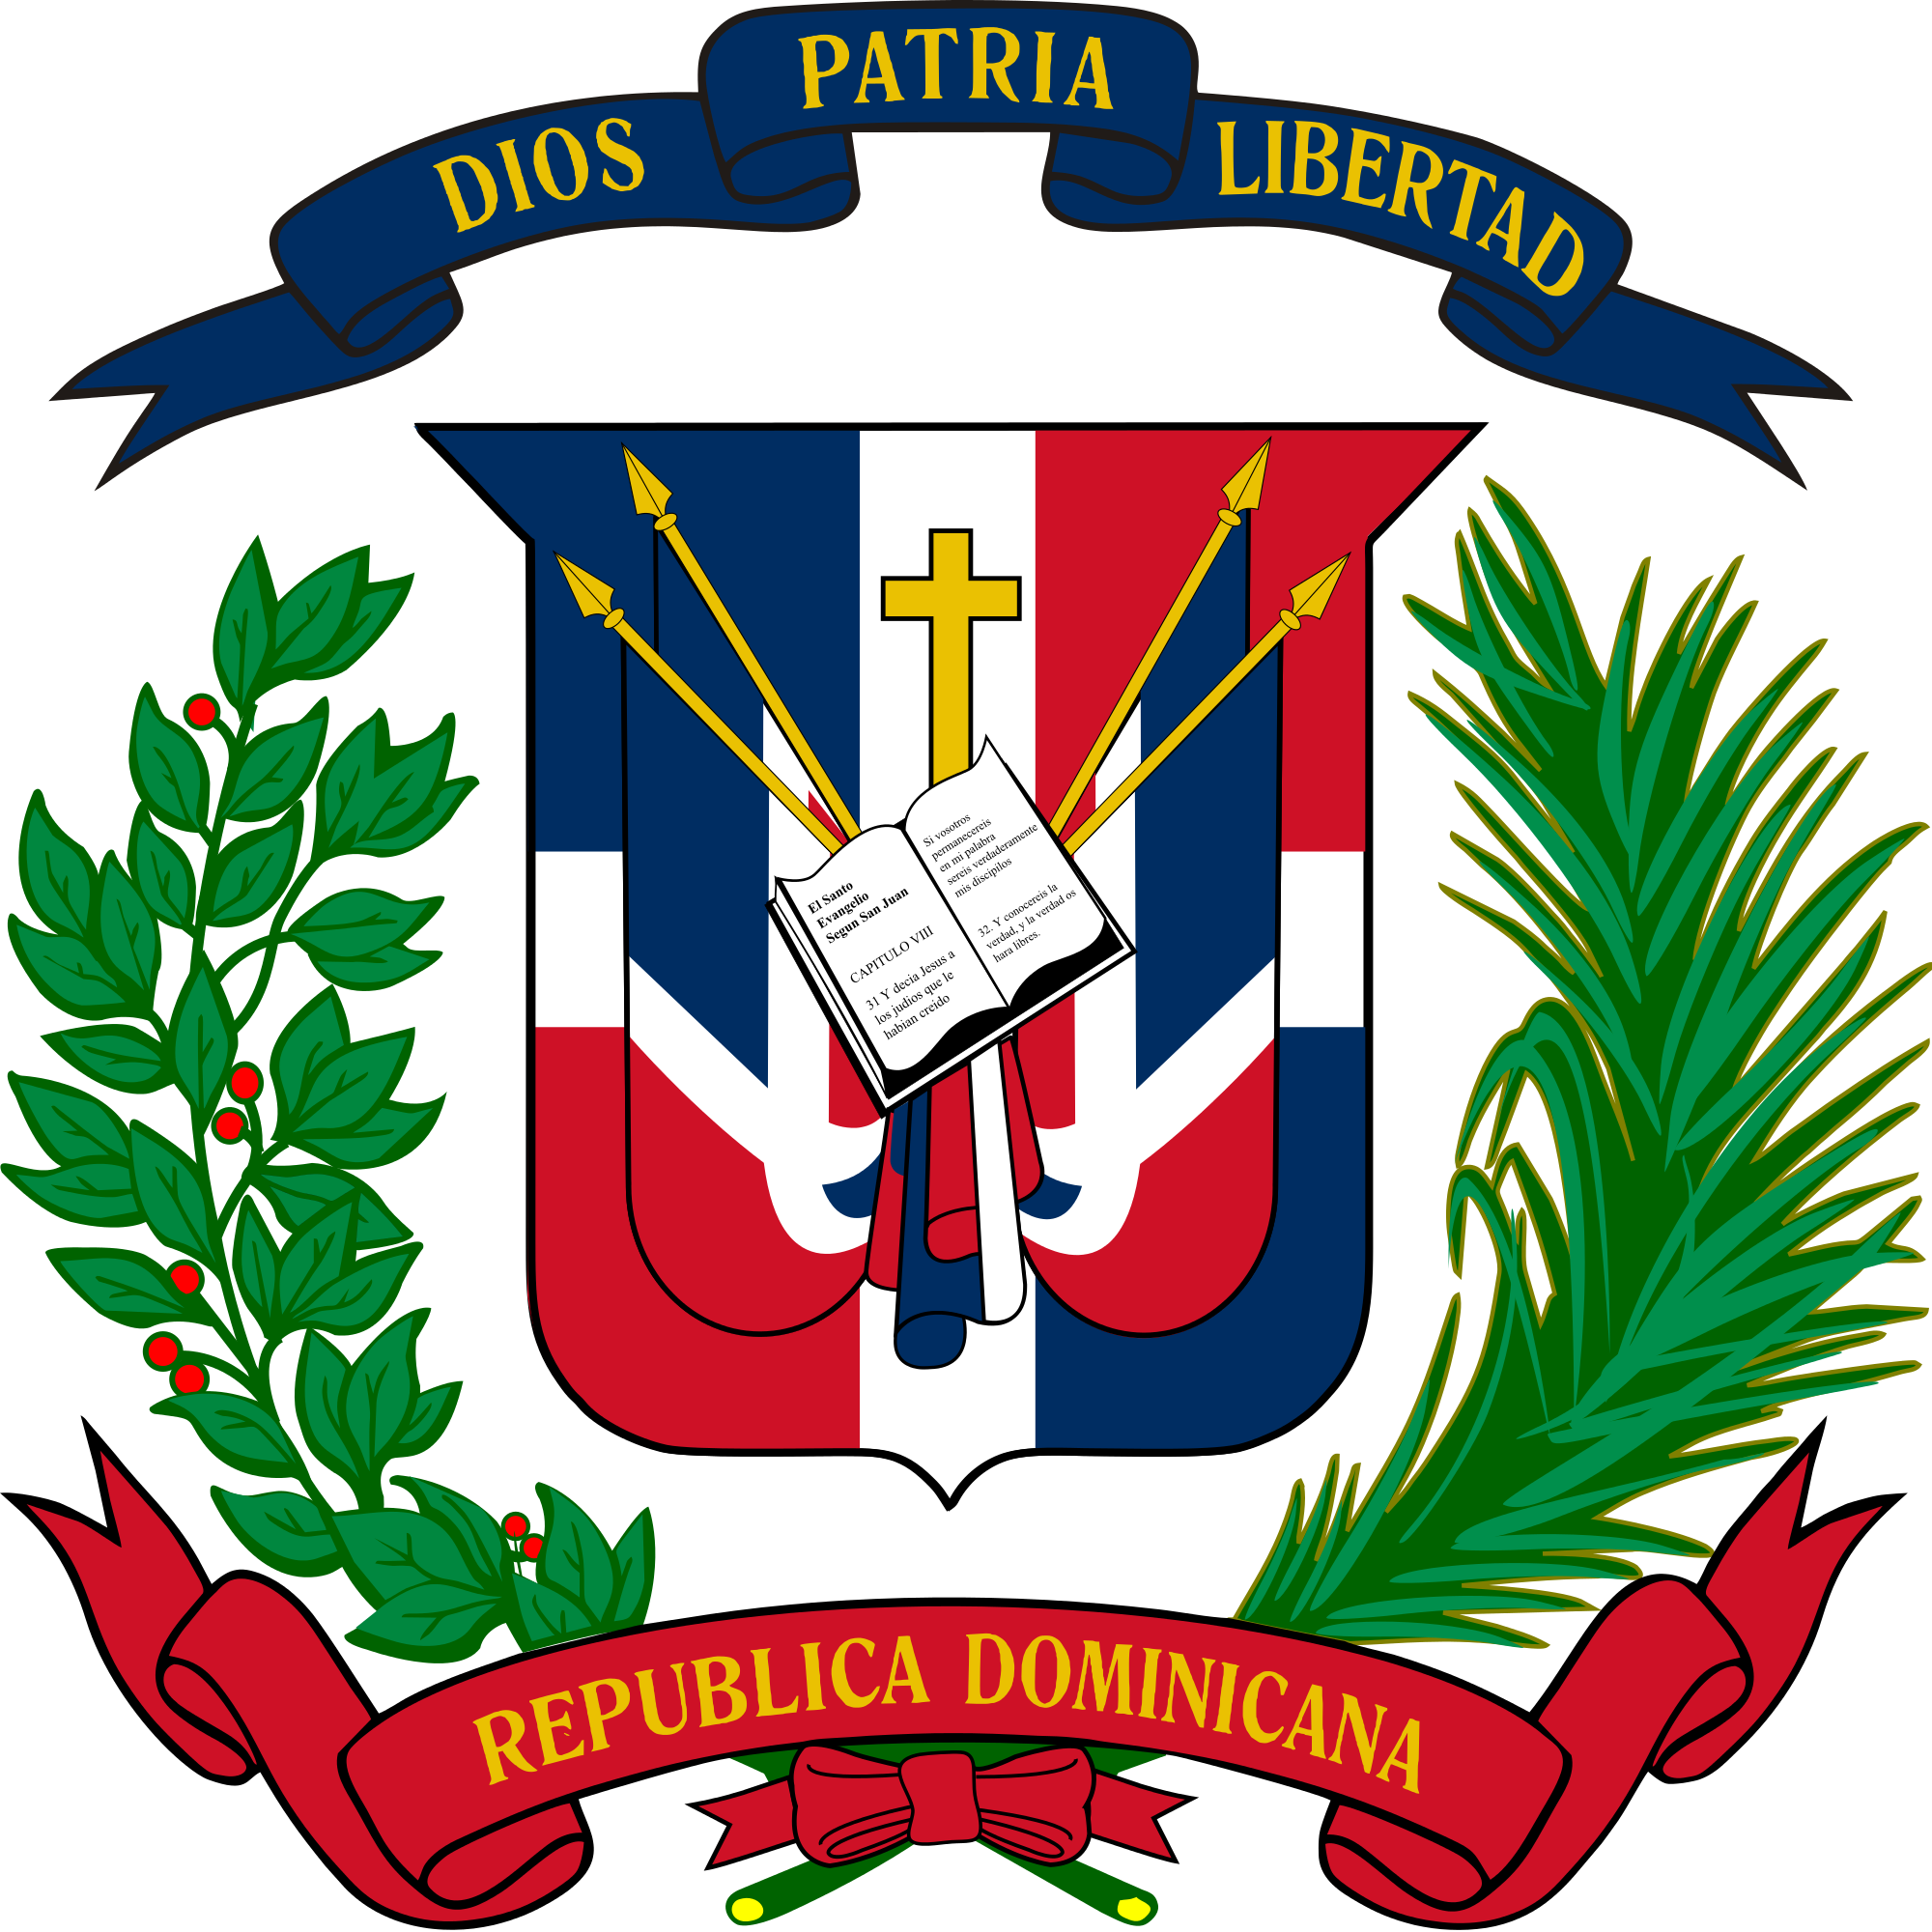 The Dominican Republic Flag Was Officially Adopted On November 6